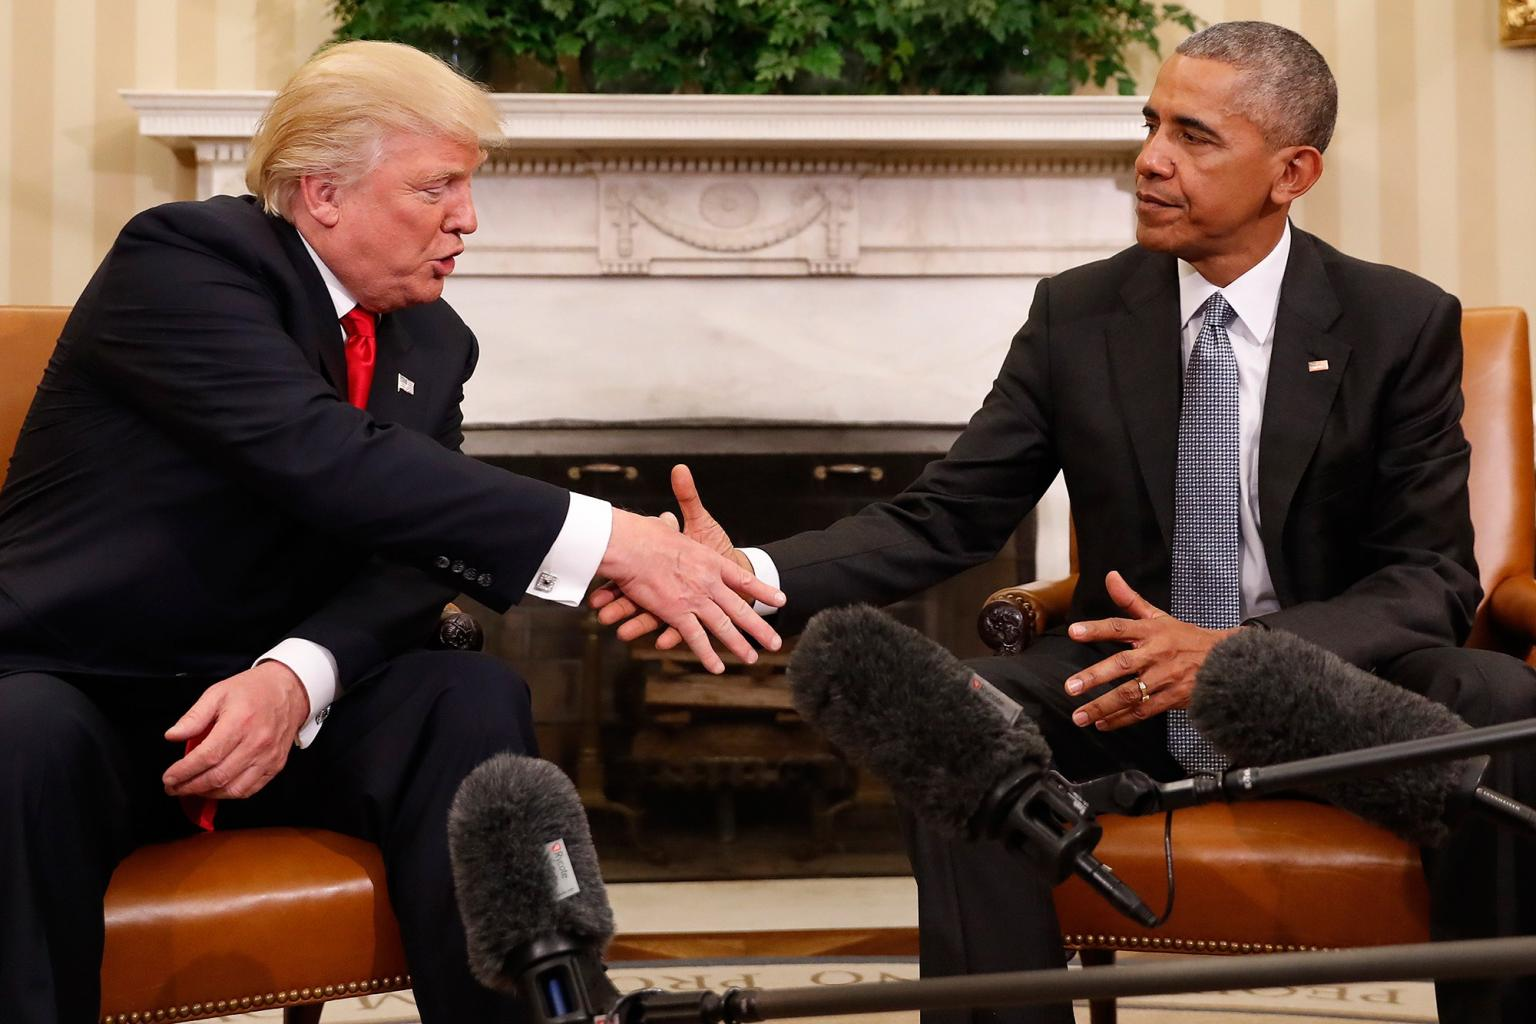 Barack Obama Says He and Donald Trump Are 'Sort of Opposites'